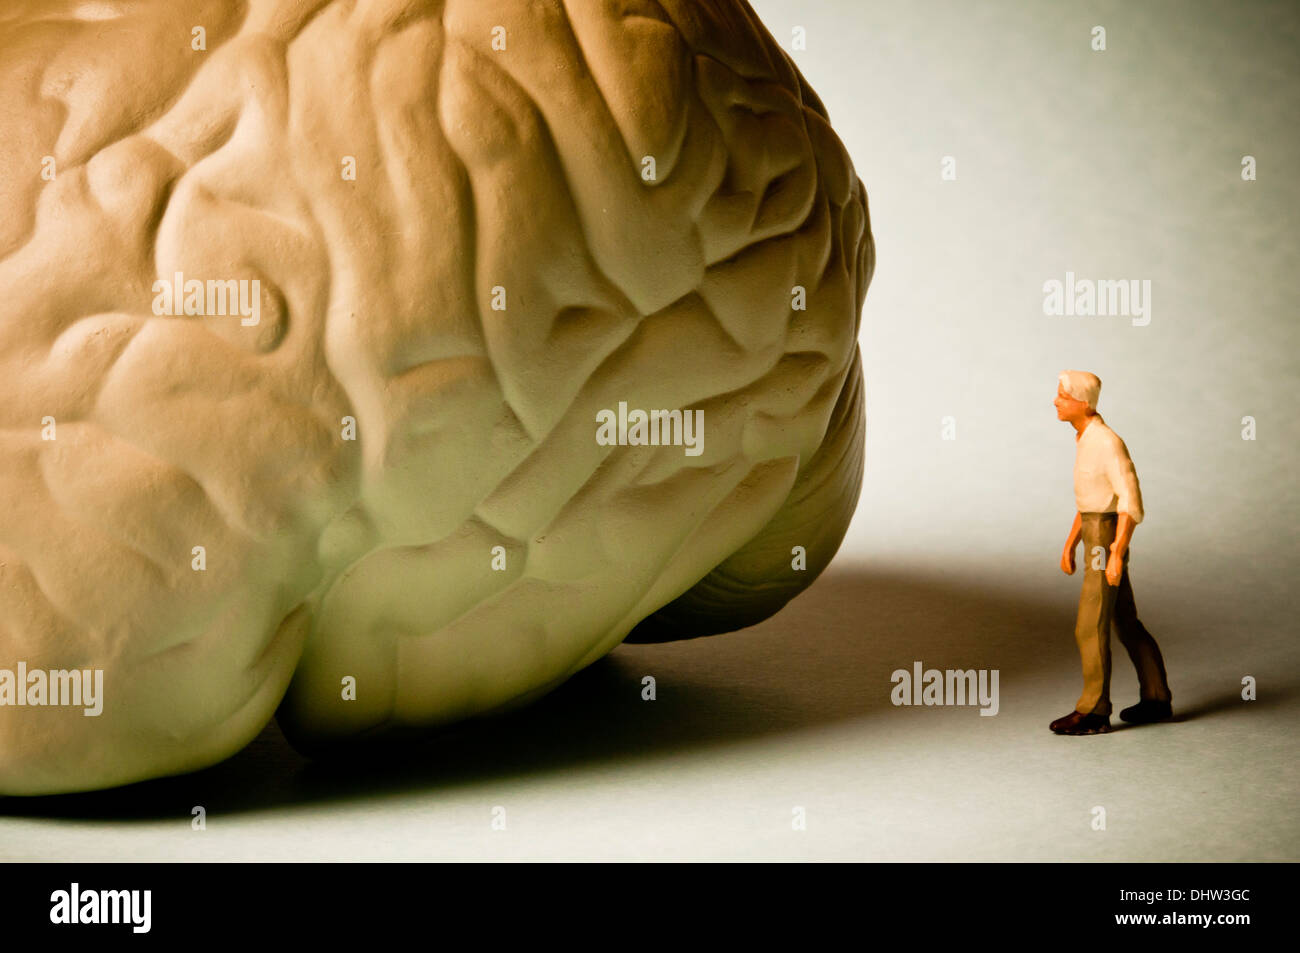 Alzheimer and mind diseases concept - Stock Image